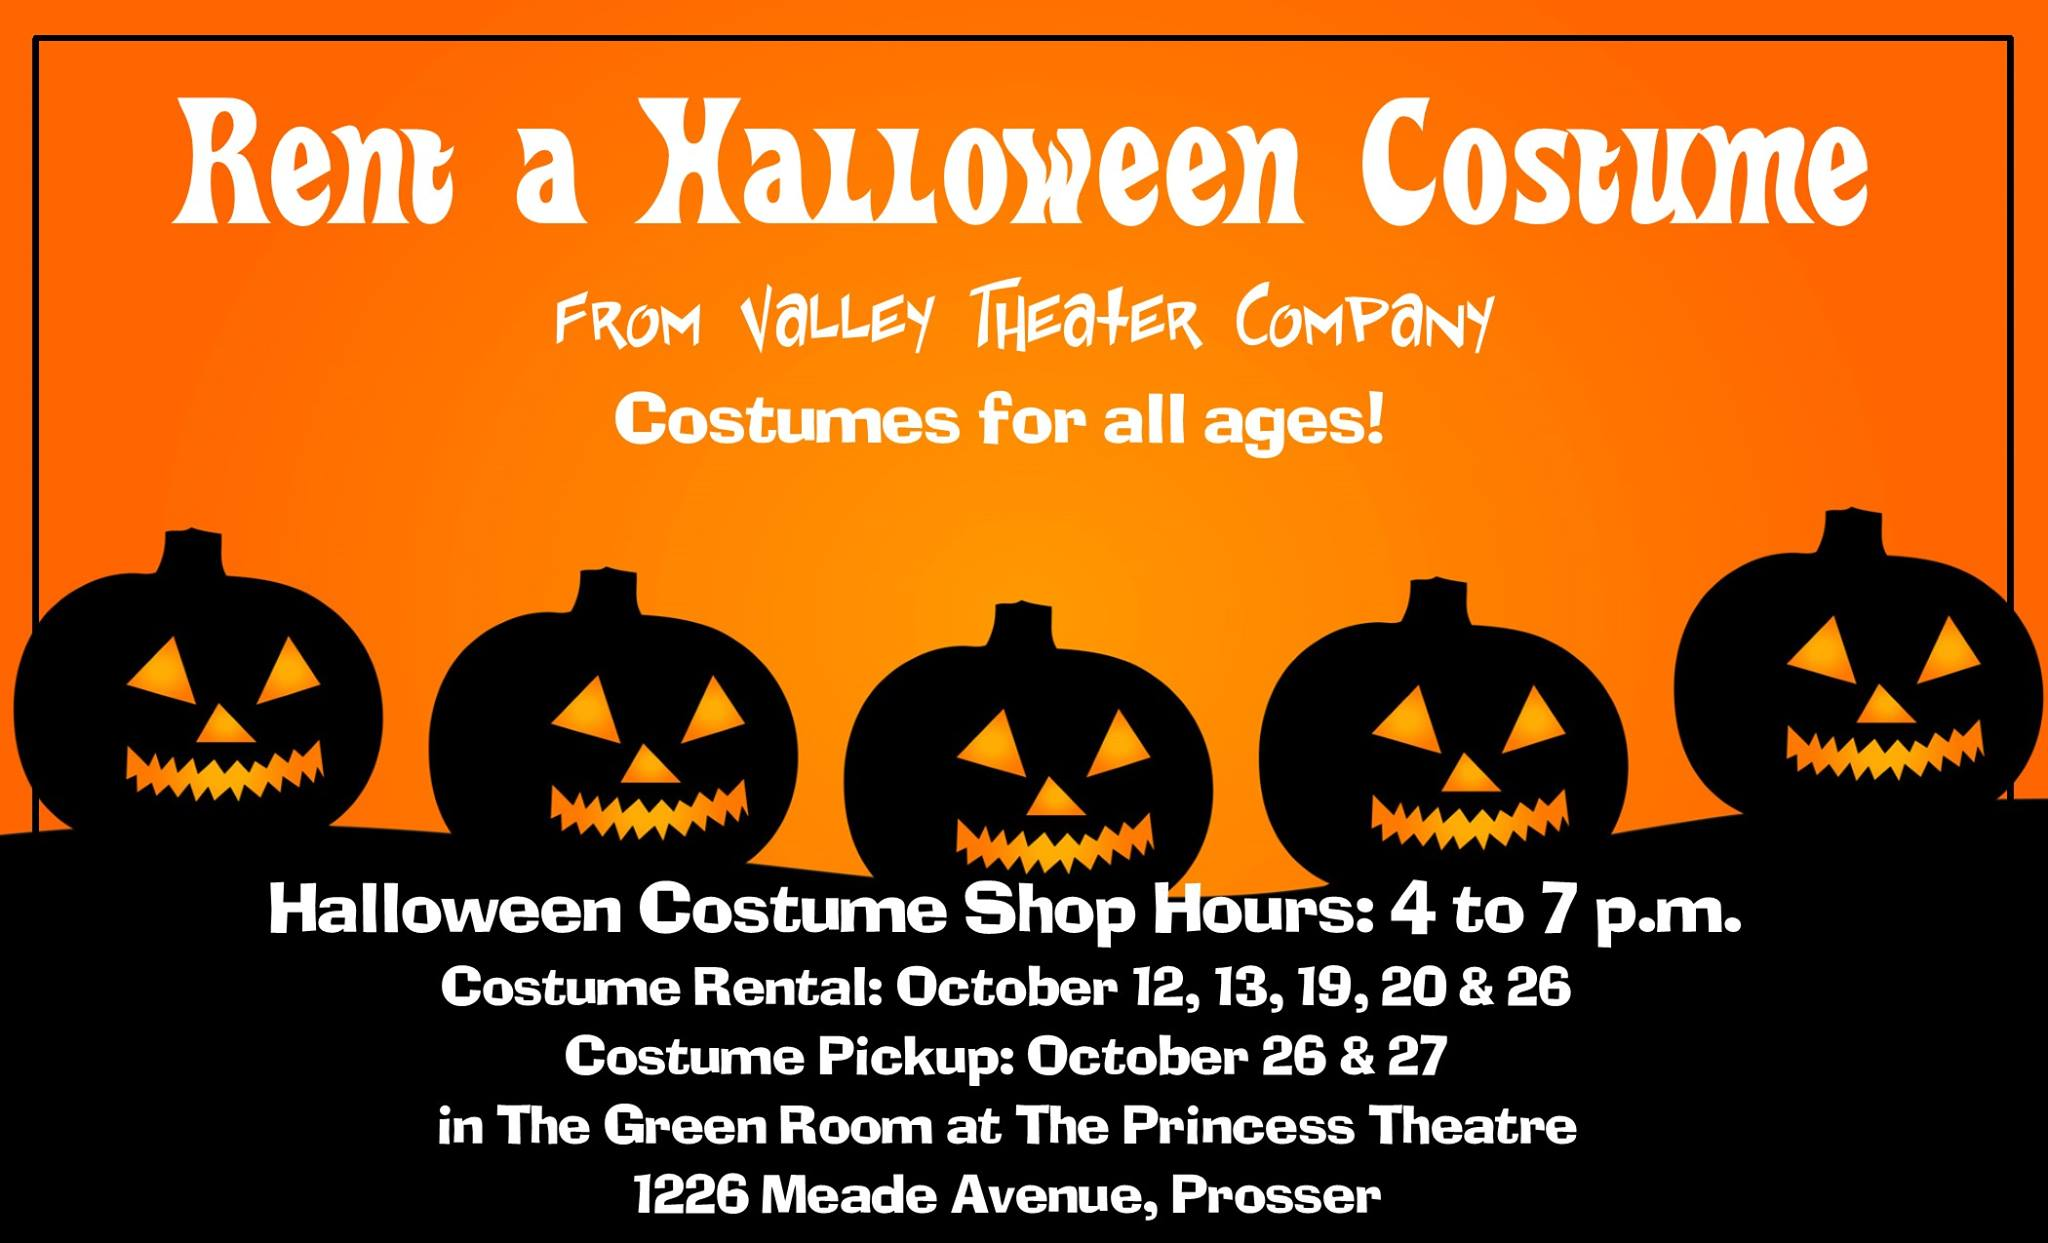 Princess Theatre Halloween Costume Rental